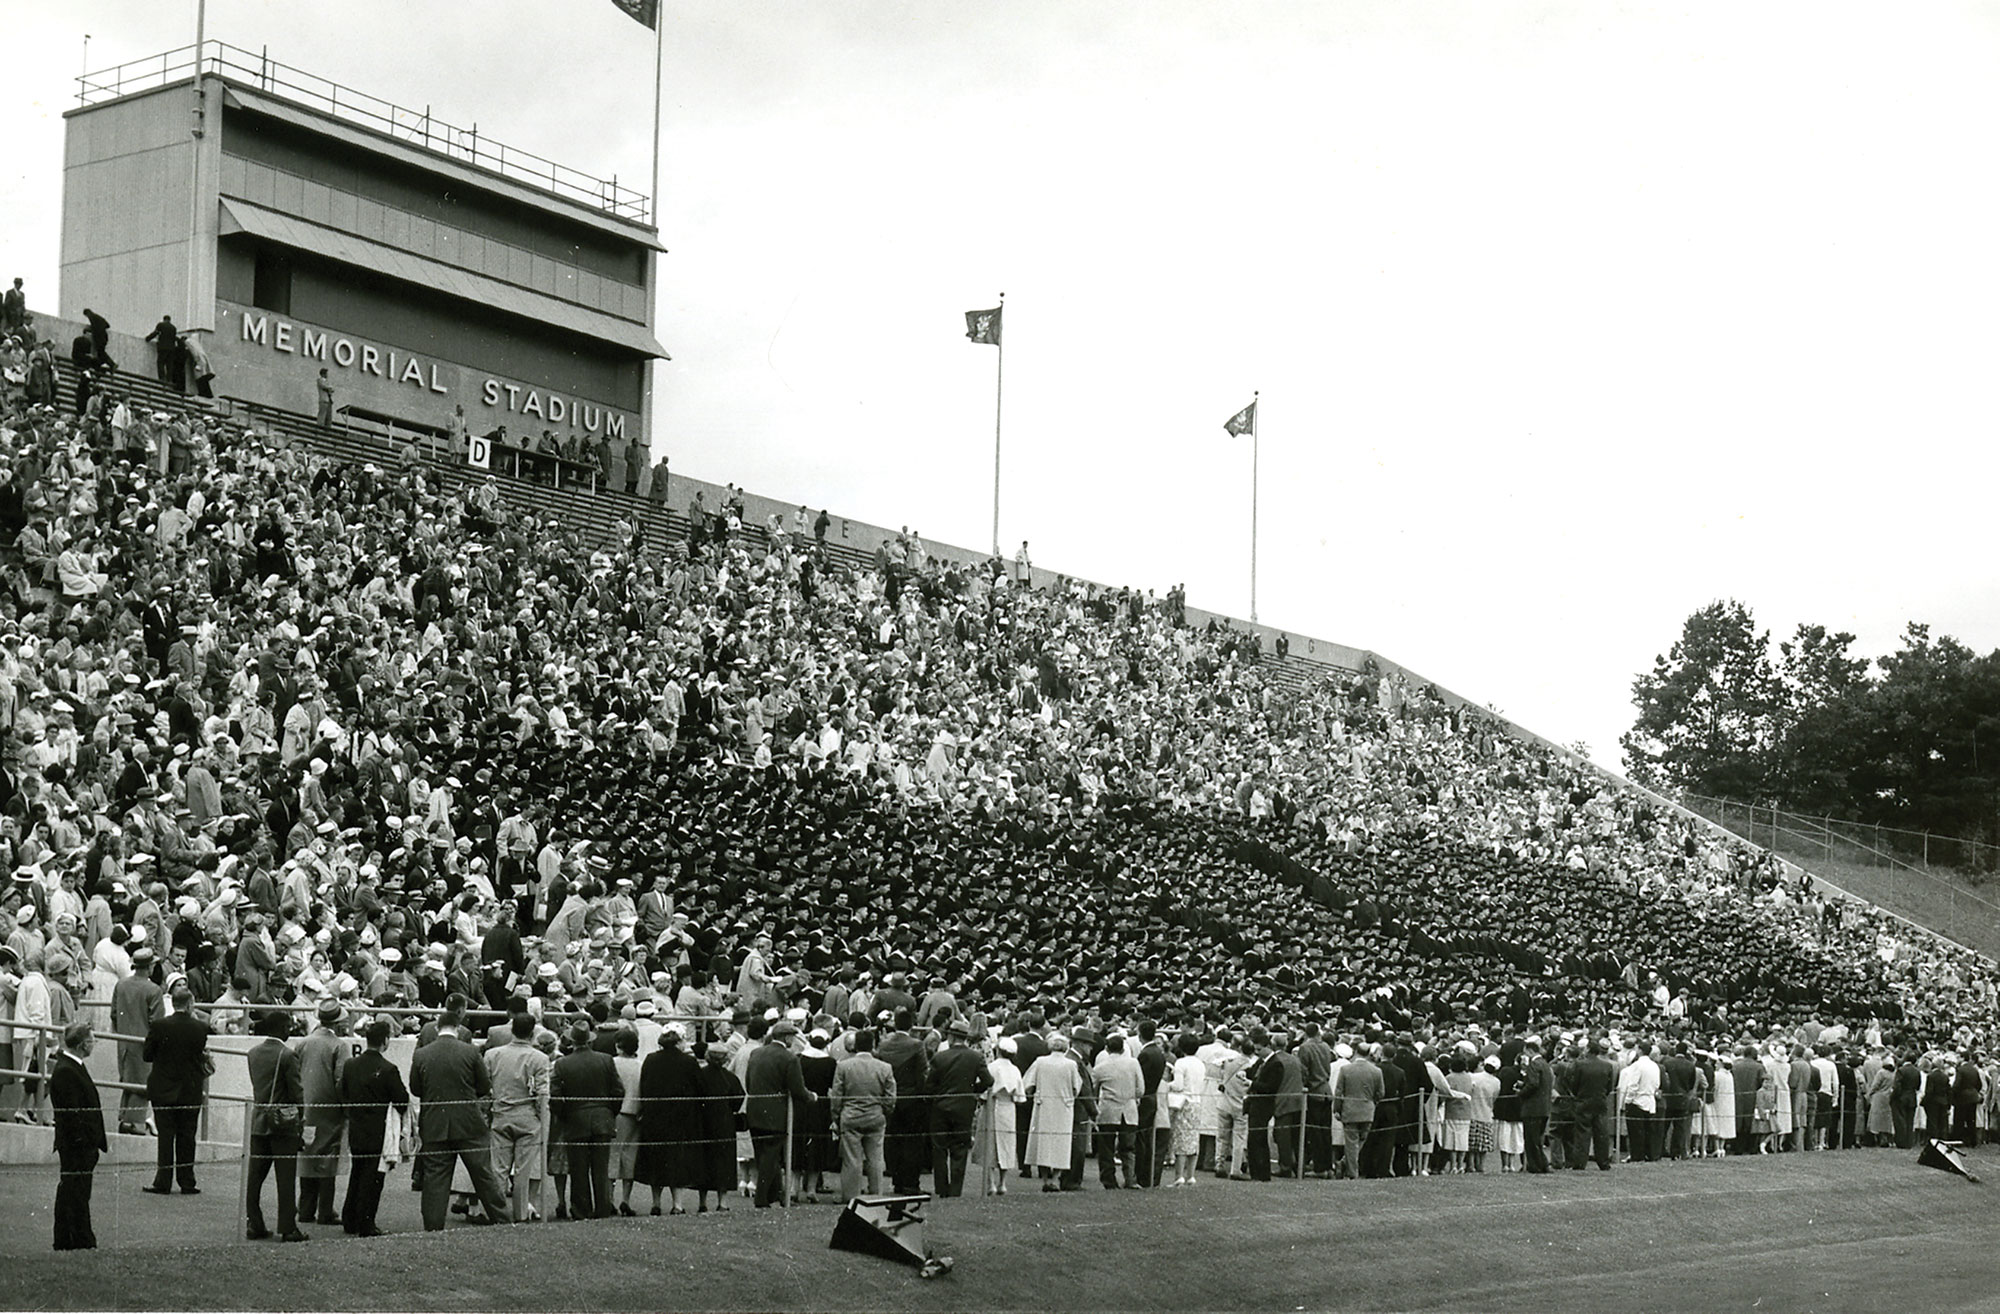 In the early sixties during the Homer Babbidge administration, commencement was held in Memorial Stadium in Storrs